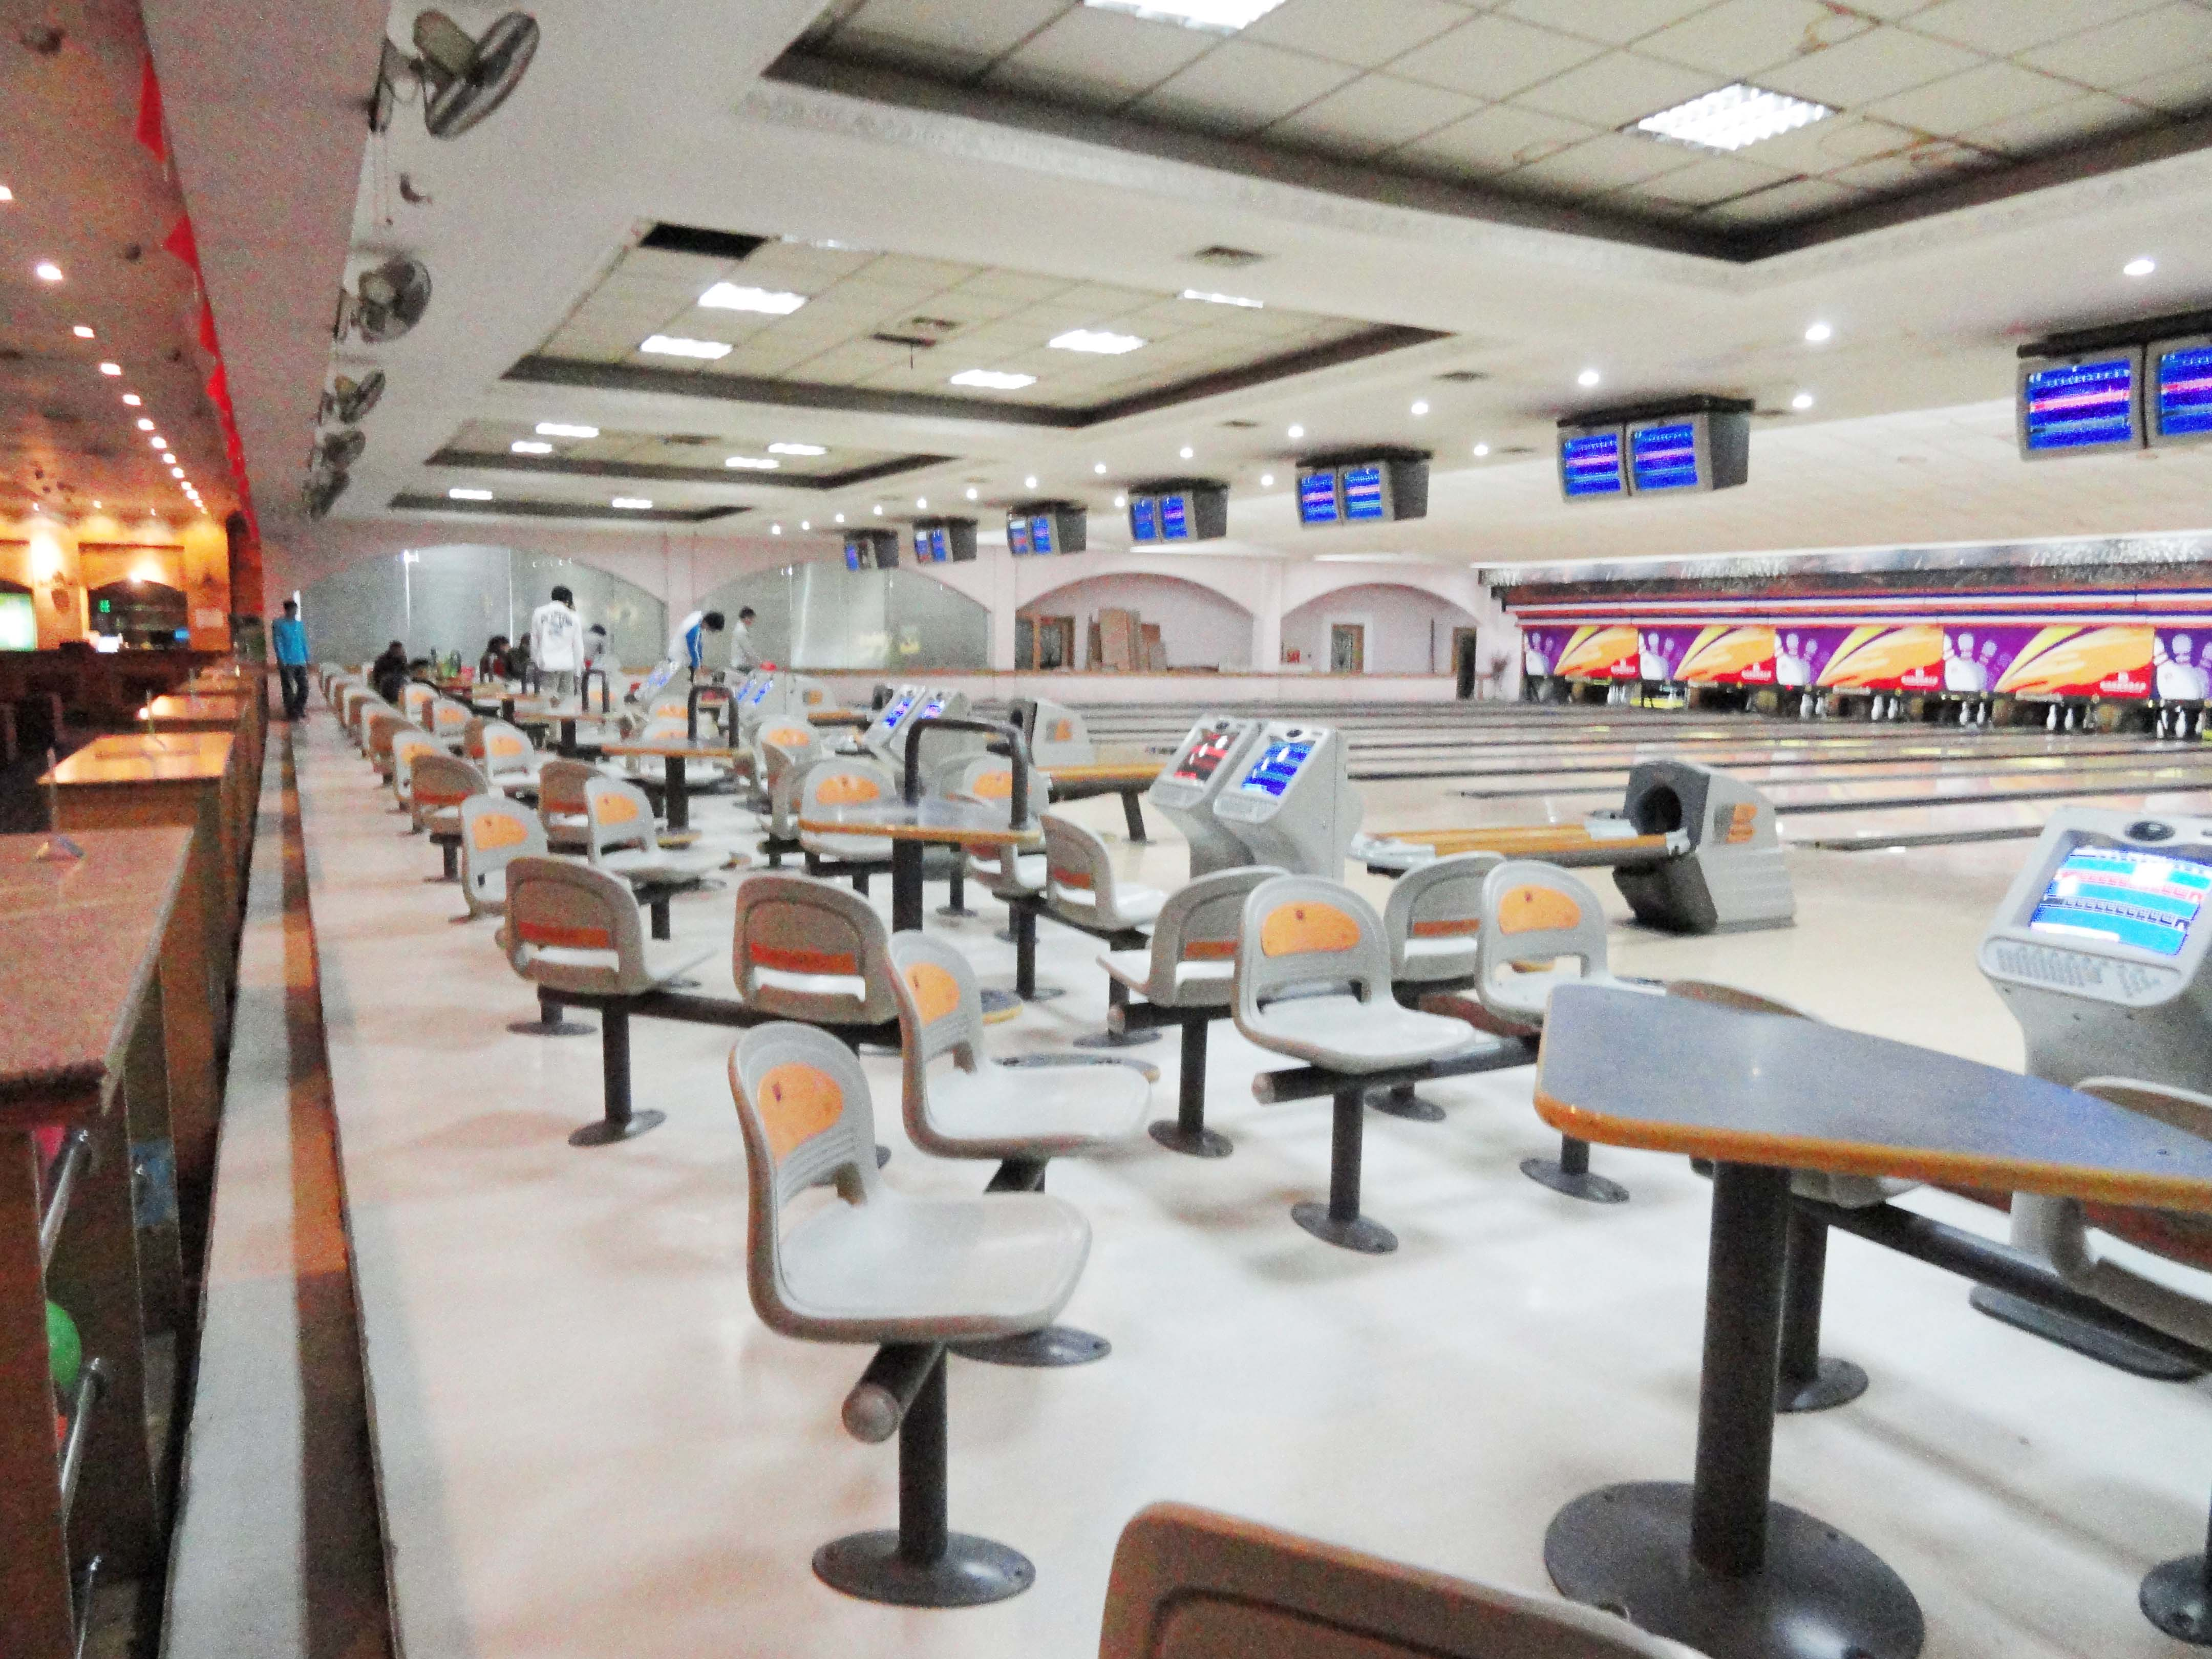 an introduction to bowling Our website uses cookies this helps us to provide you with a good experience when you browse our website and also allows us to improve our site.